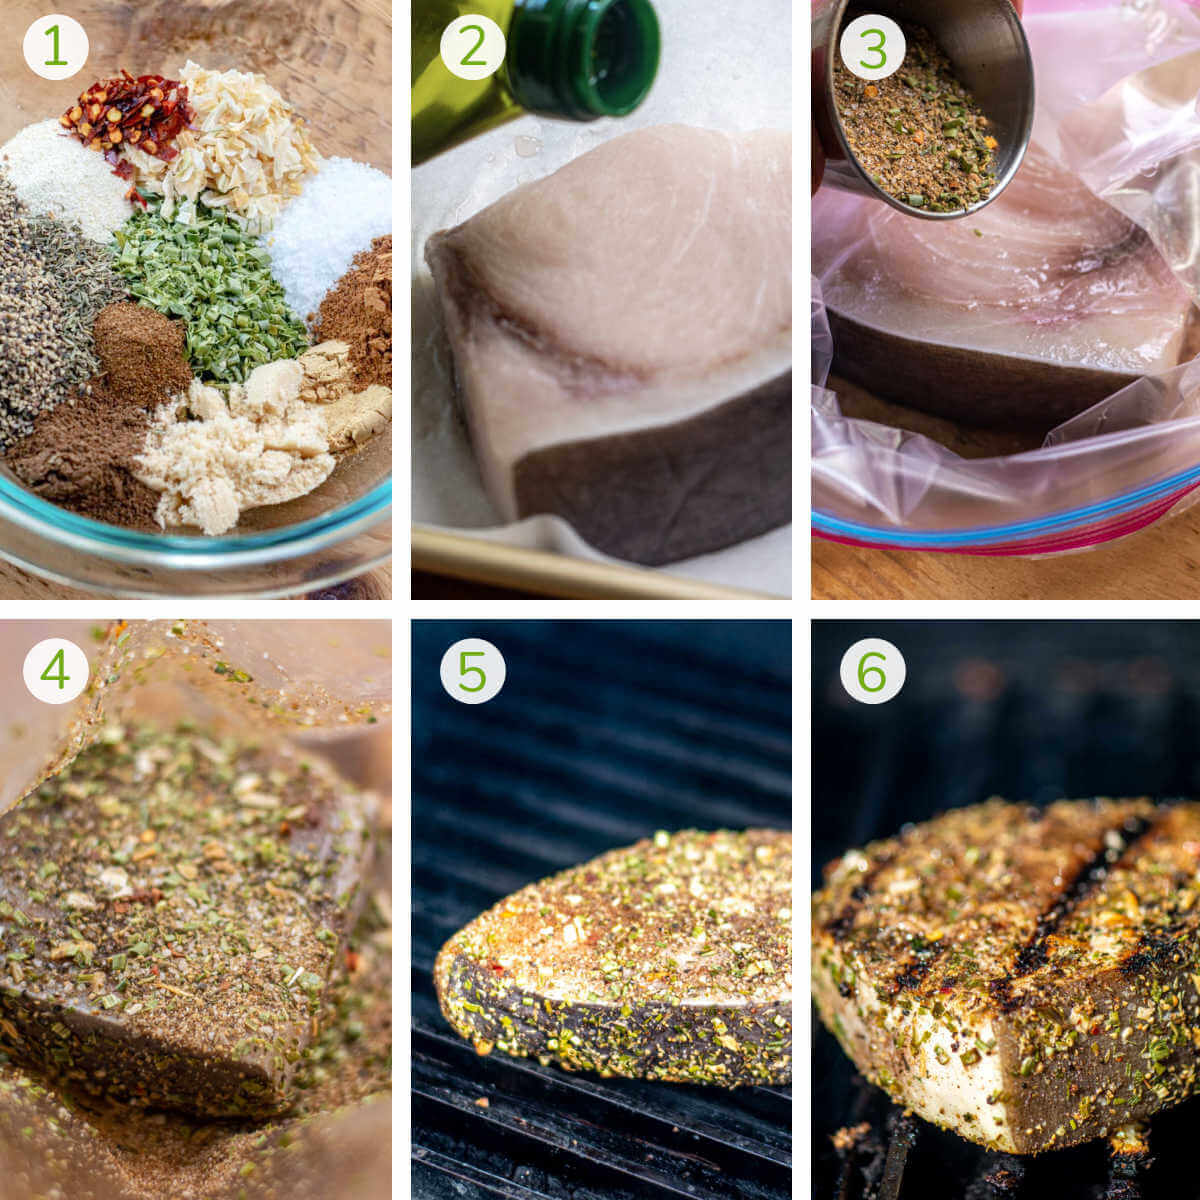 photos showing the process to combine the jerk seasoning, add the swordfish to a Ziploc to cover and then grilling.